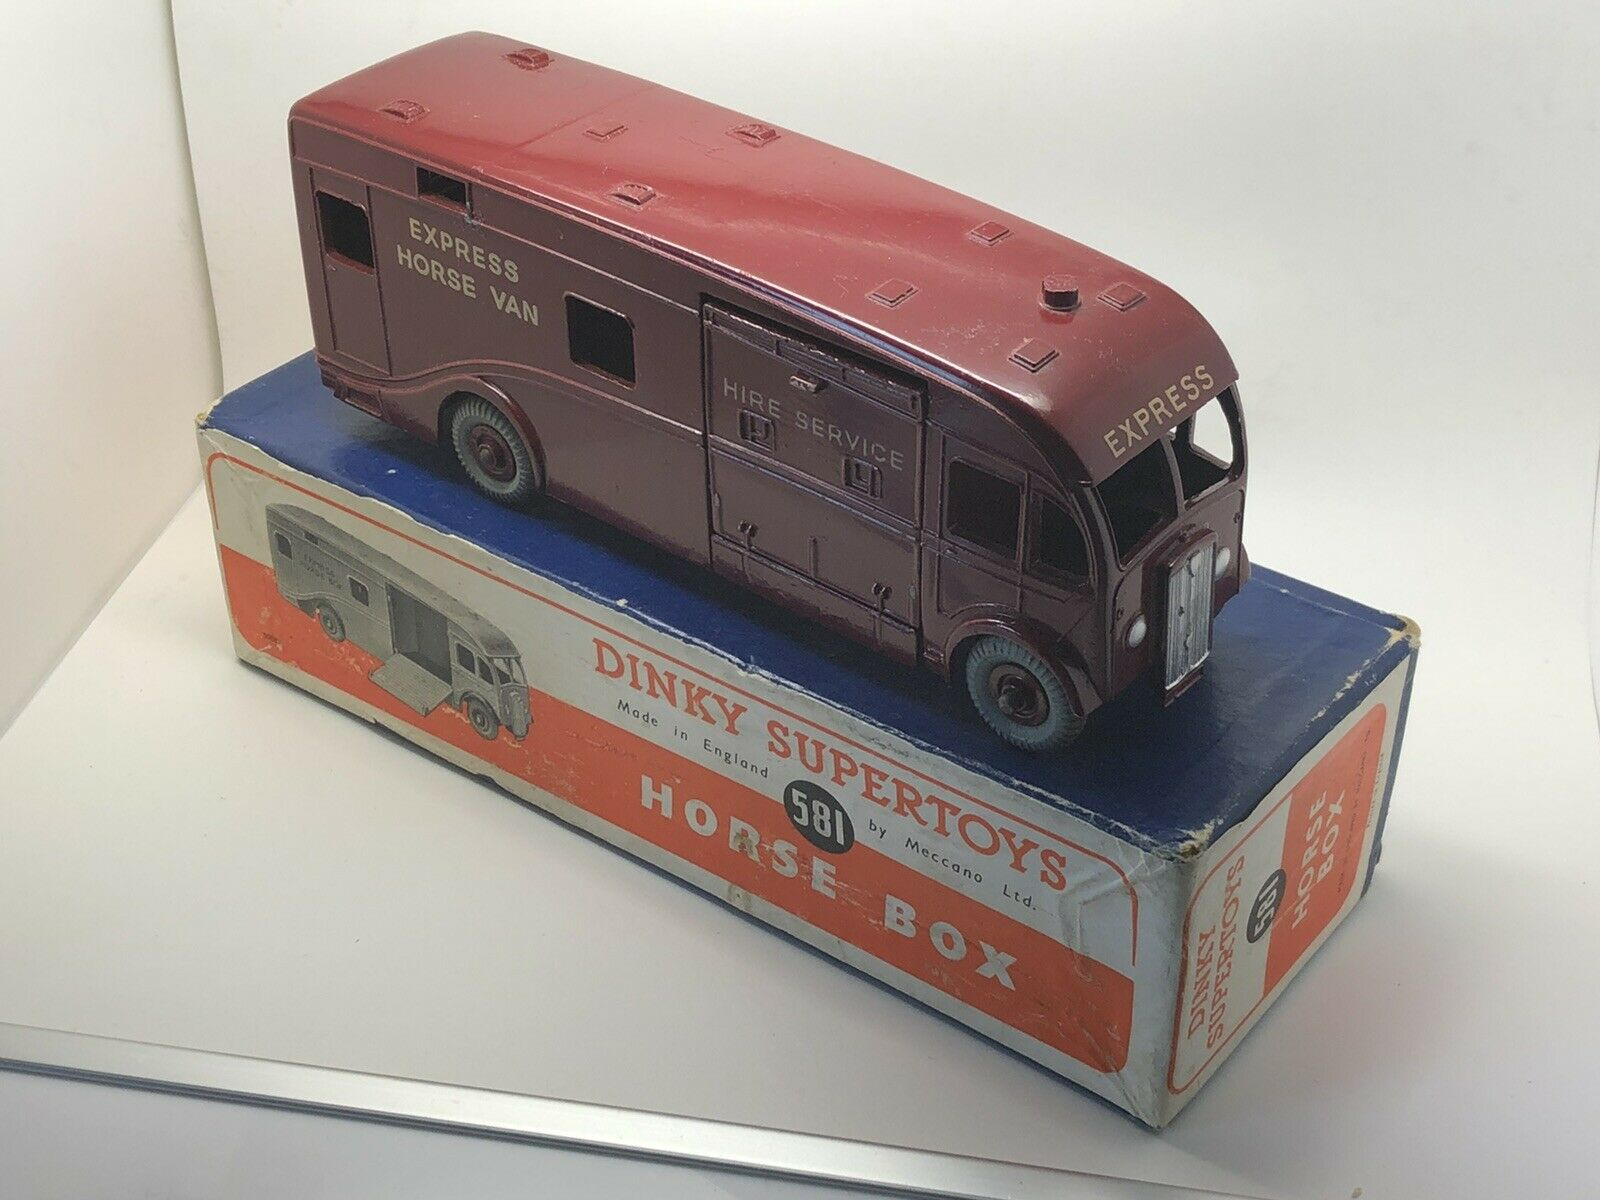 DINKY 581 HORSE VAN, BOX, USA ISSUE, VERY NEAR MINT BOXED, HUDSON DOBSON LABEL